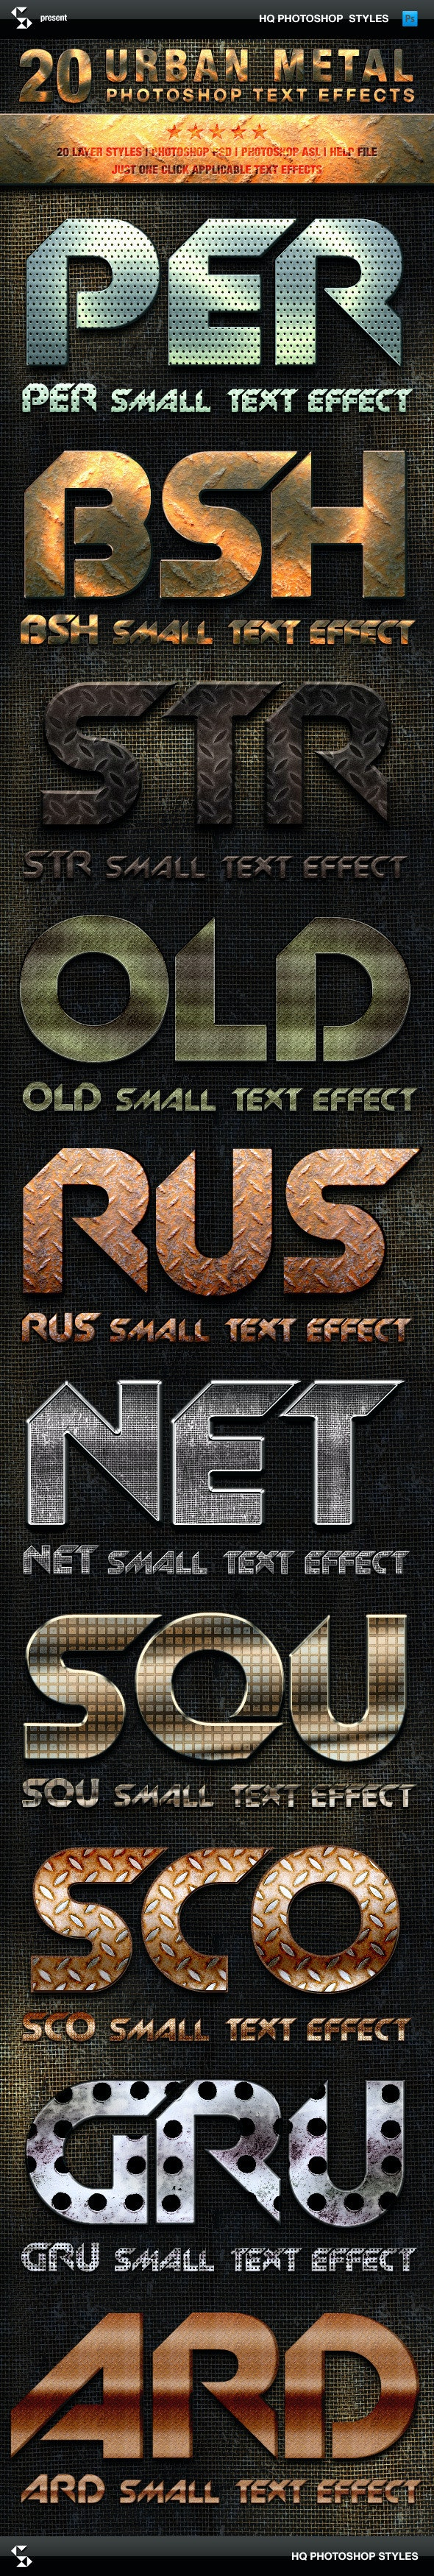 Metal Styles - Urban Metal Text Effects - Text Effects Styles